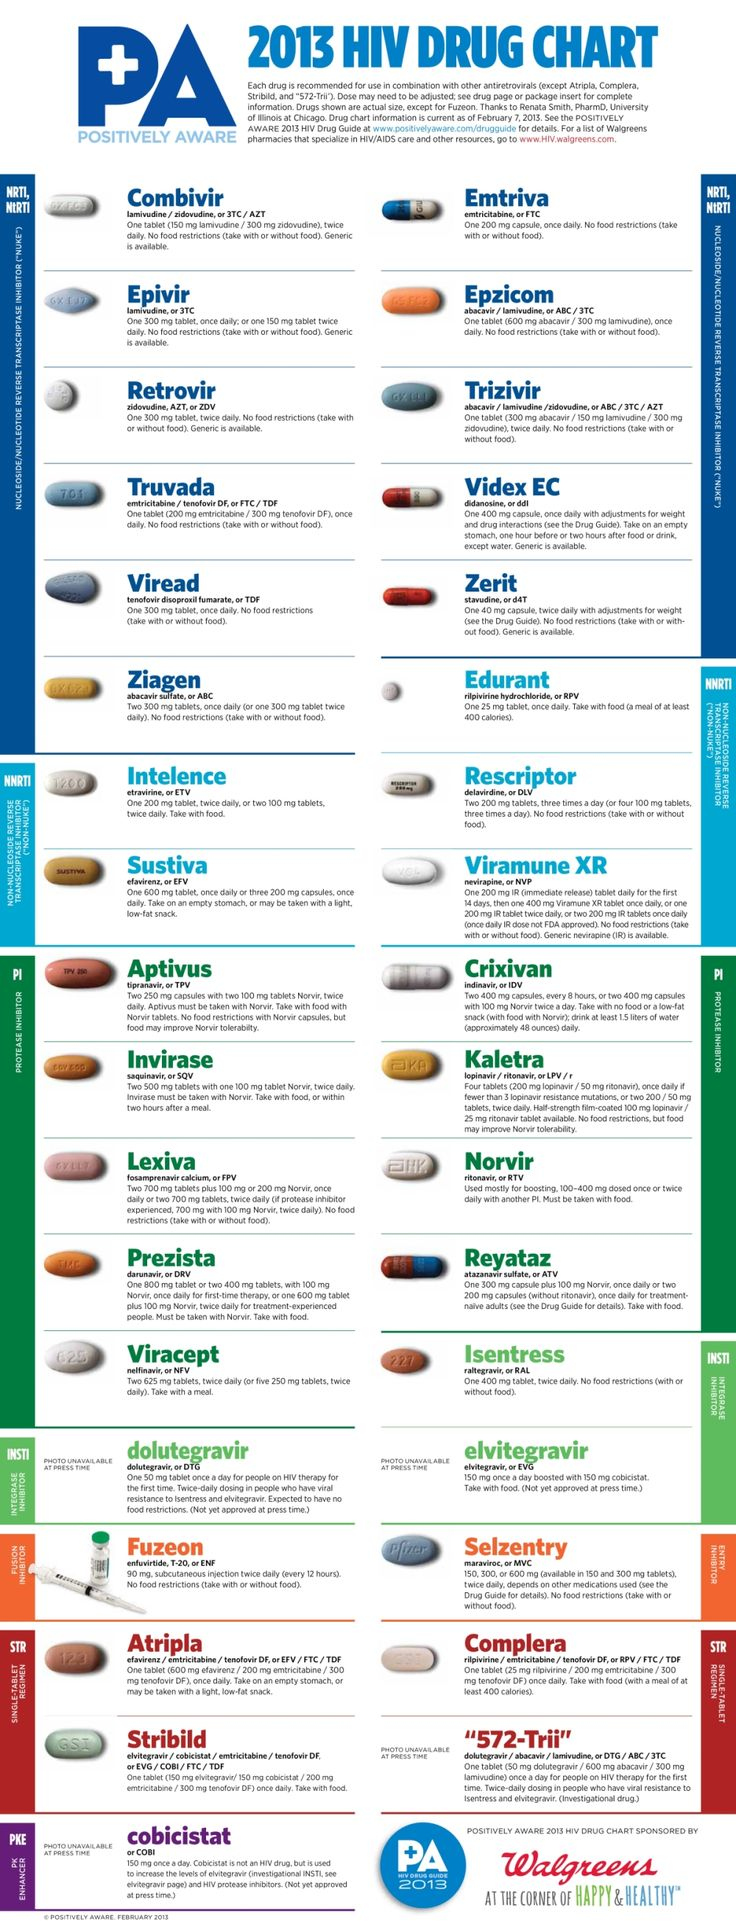 HIV drugs currently available. 2013 Drugs chart courtesy of Positively ...